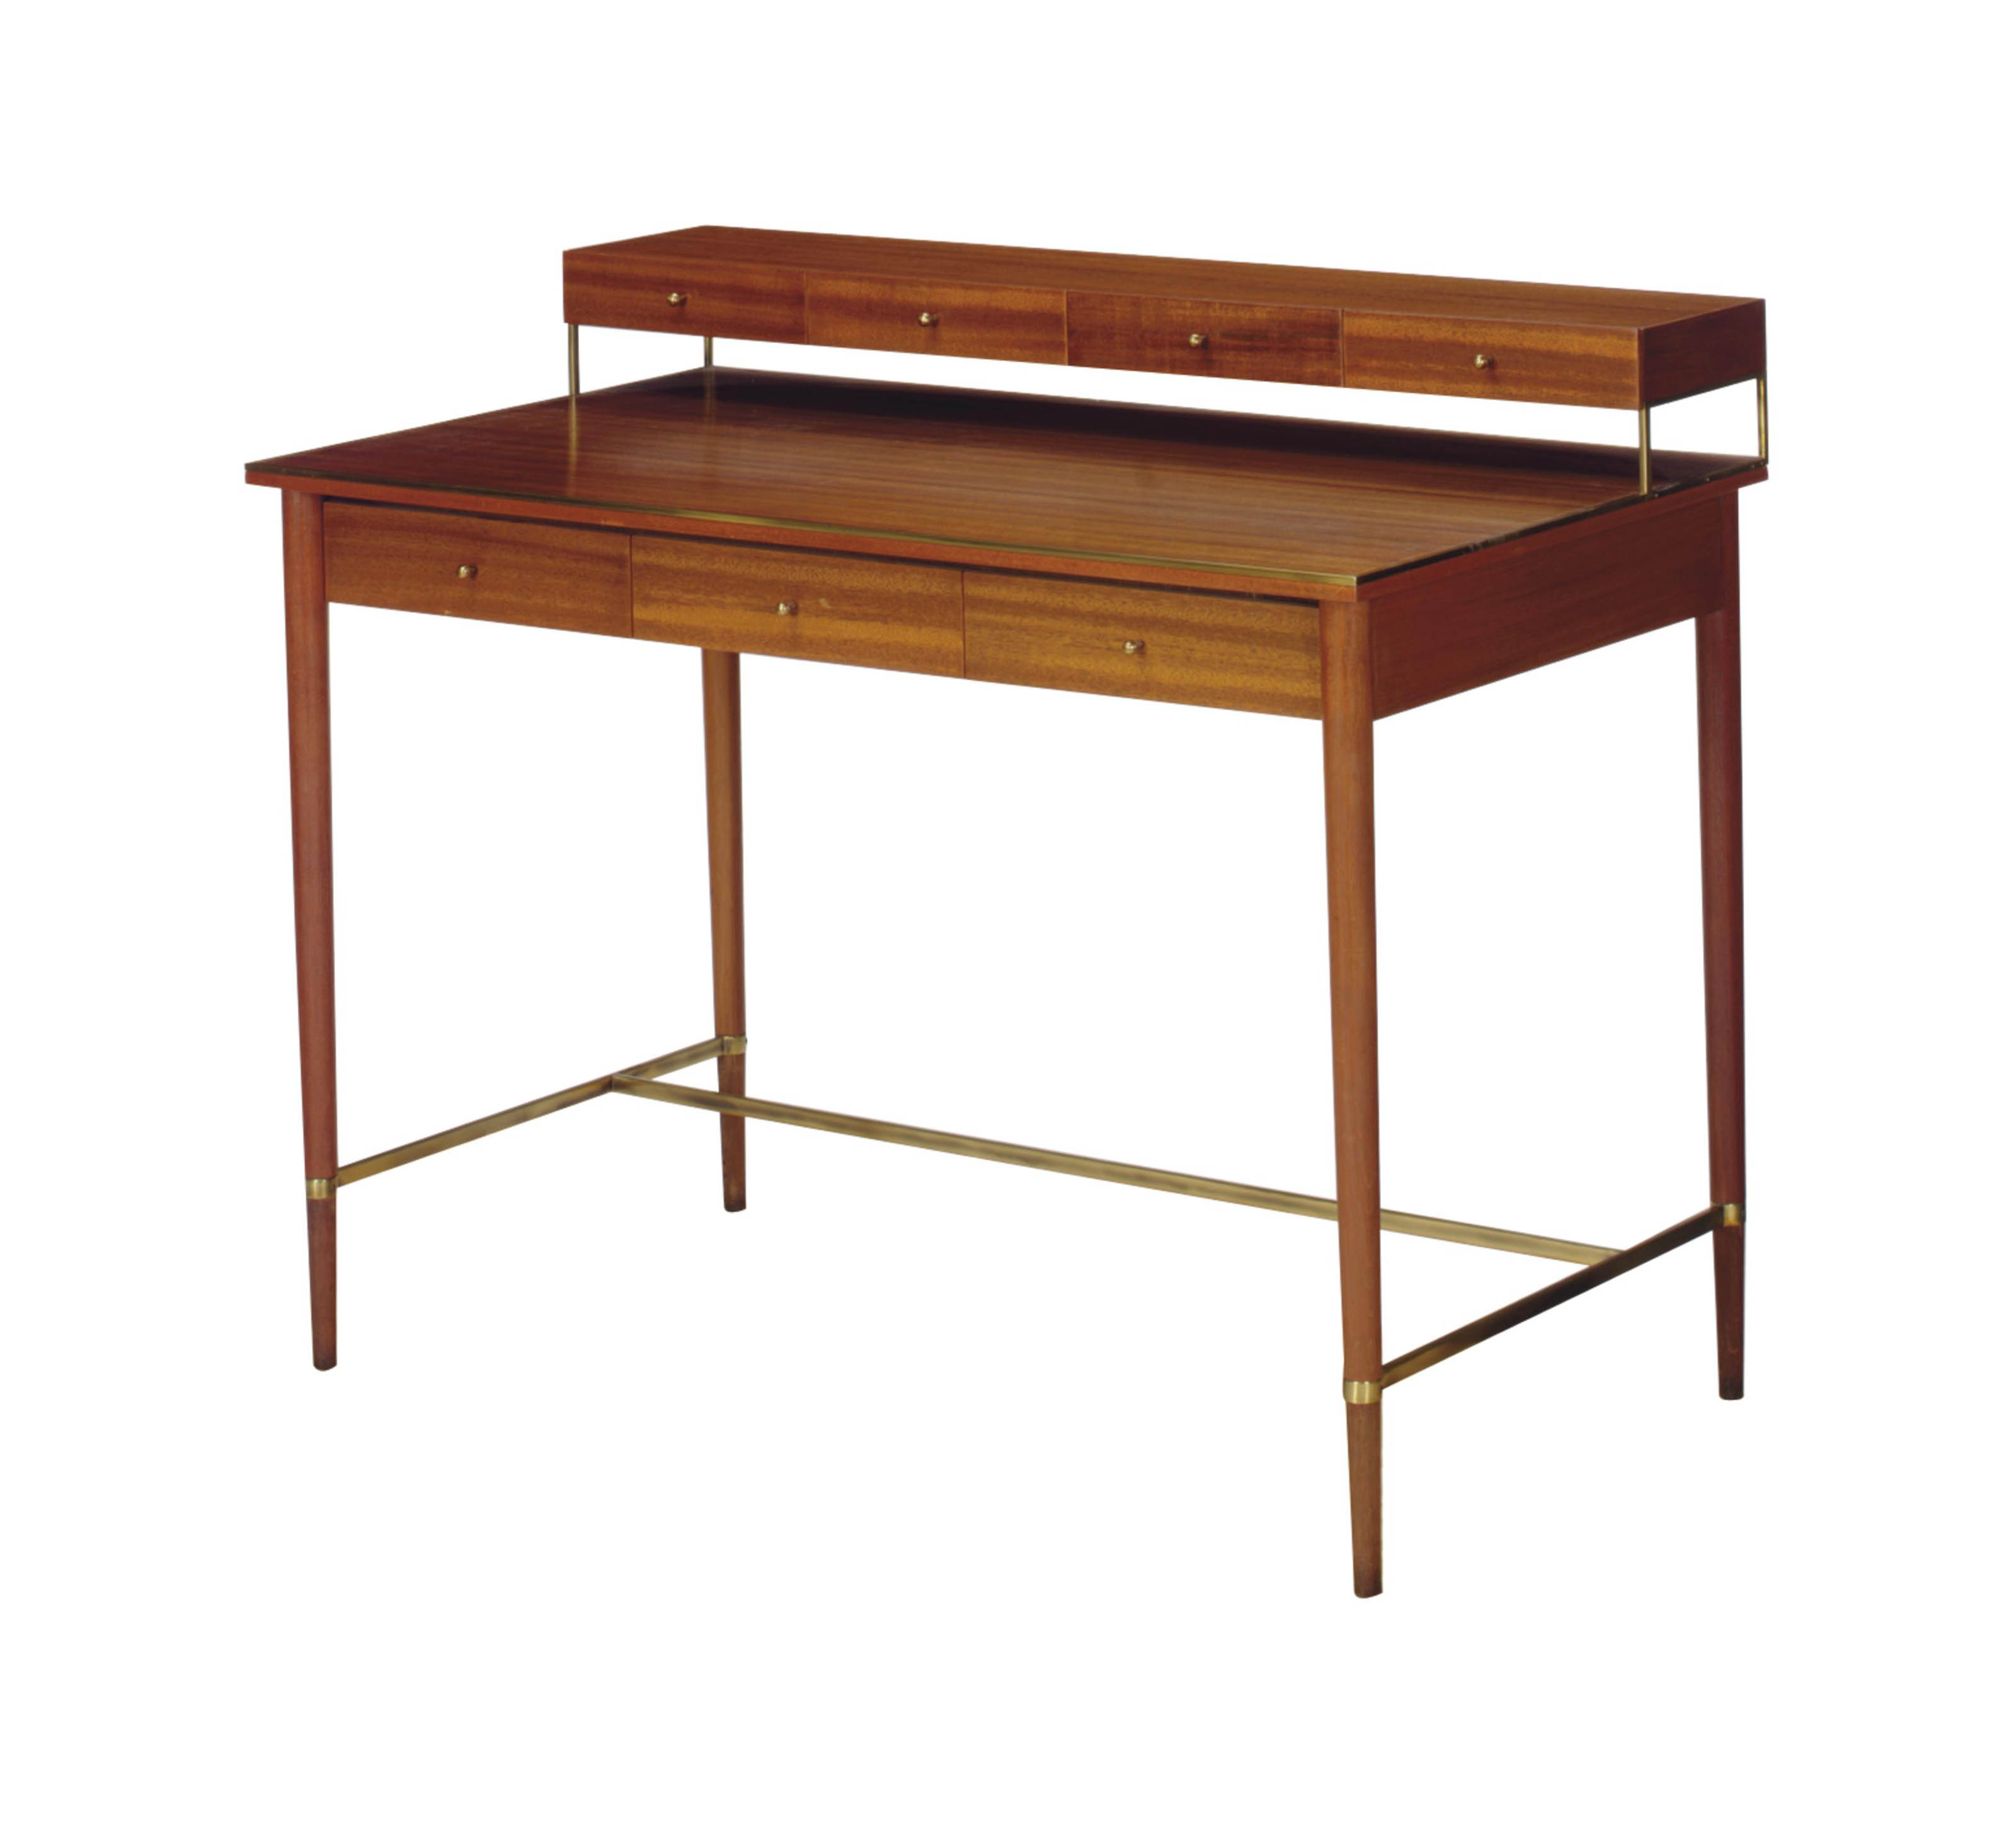 A GILT-METAL-MOUNTED MAHOGANY DESK,